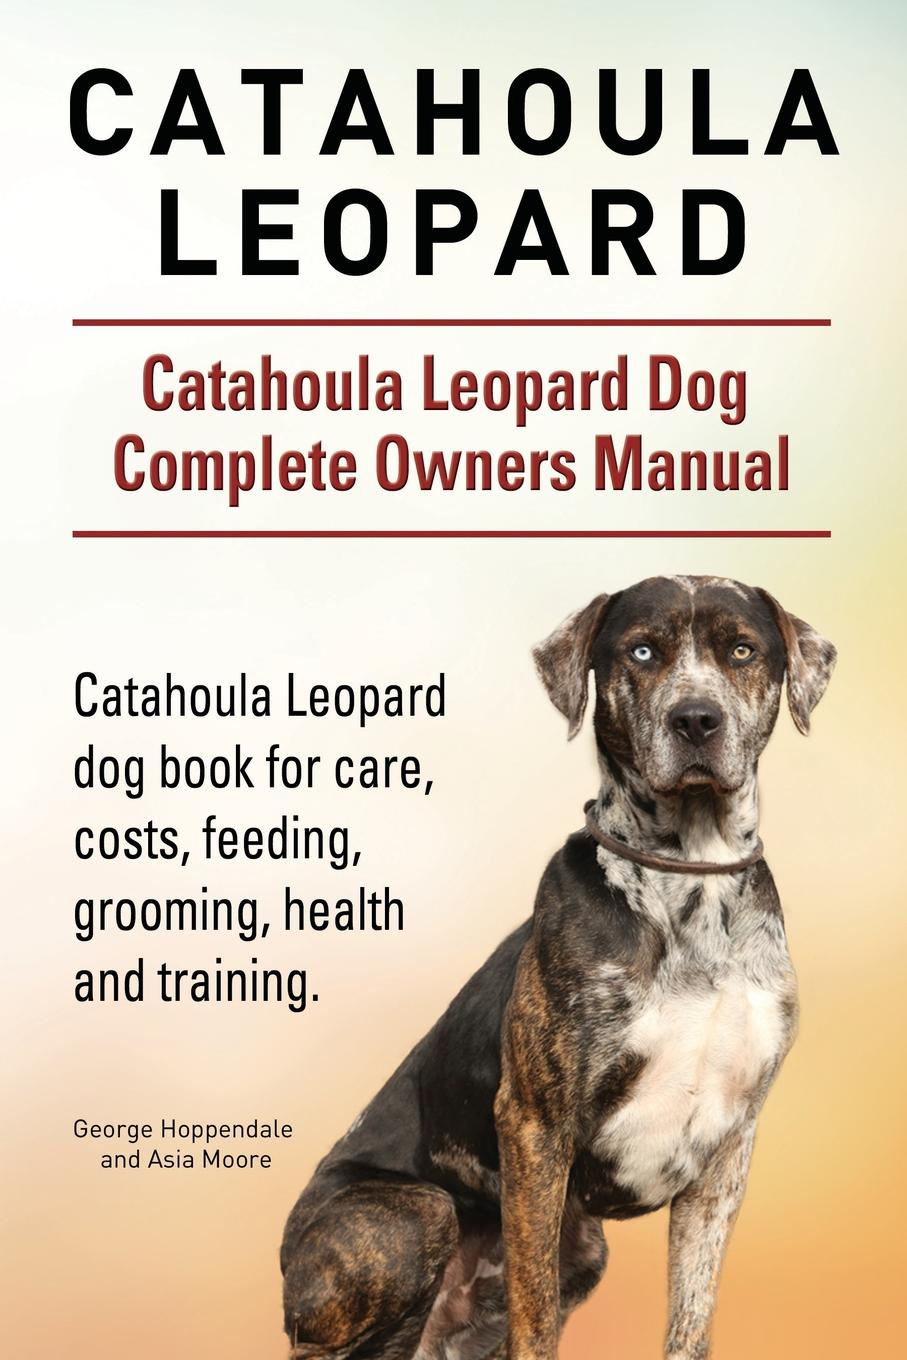 Фото - George Hoppendale, Asia Moore Catahoula Leopard. Catahoula Leopard dog Dog Complete Owners Manual. Catahoula Leopard dog book for care, costs, feeding, grooming, health and training. harry holstone boerboel the boerboel dog owner s manual boerboel dog care personality grooming health costs and feeding all included